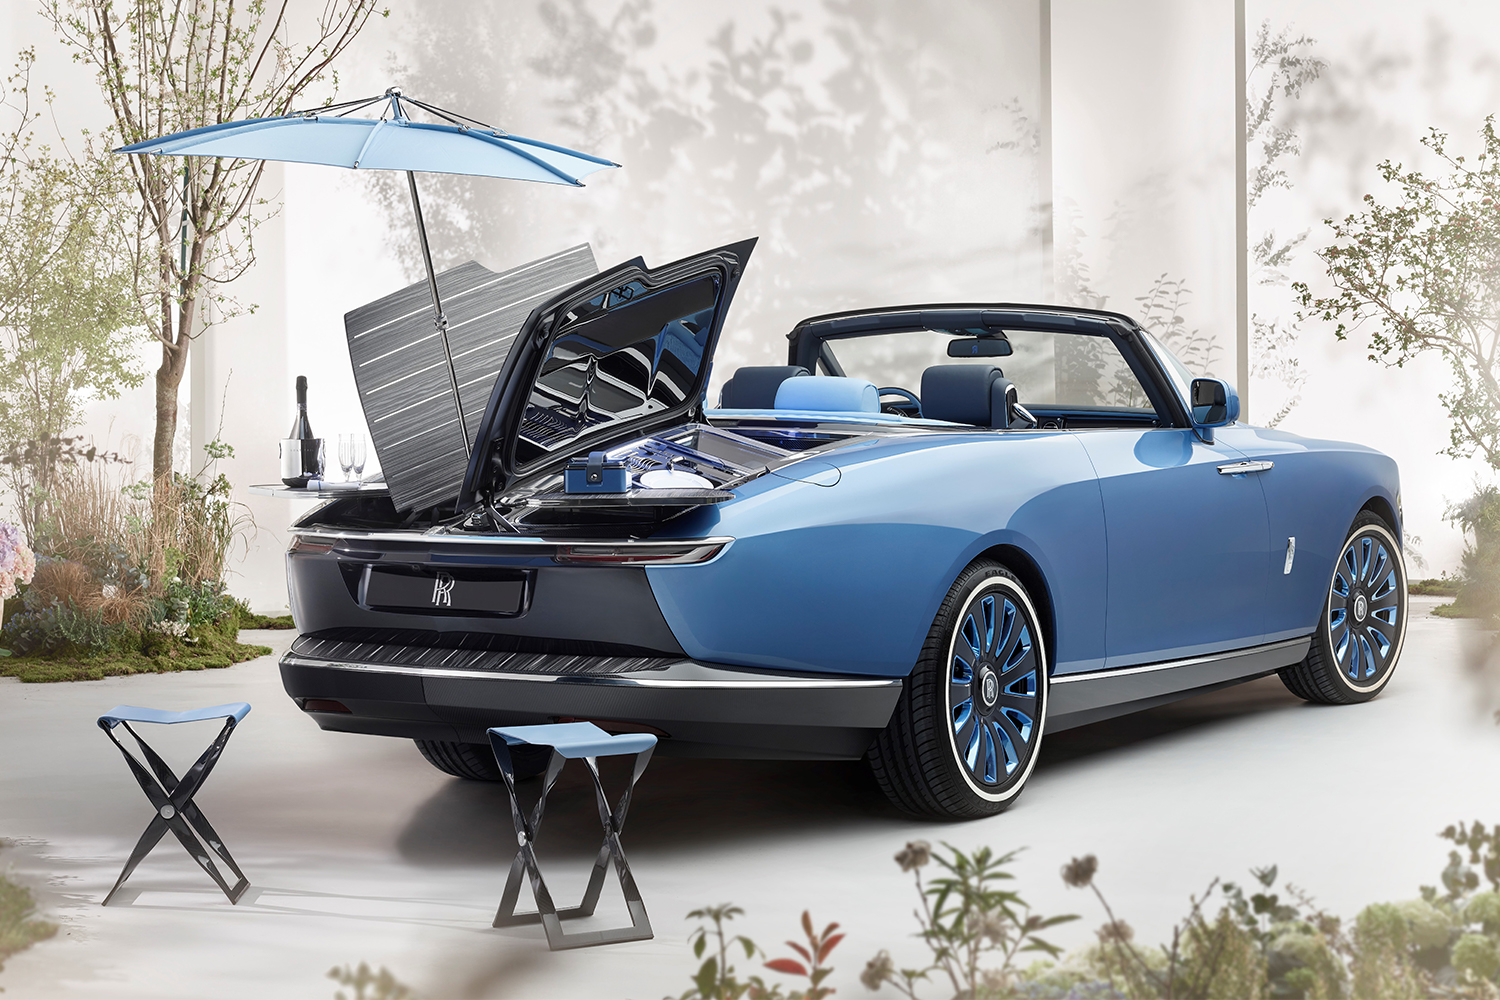 """The back end of the Rolls-Royce Boat Tail opens up to reveal a """"hosting suite"""""""